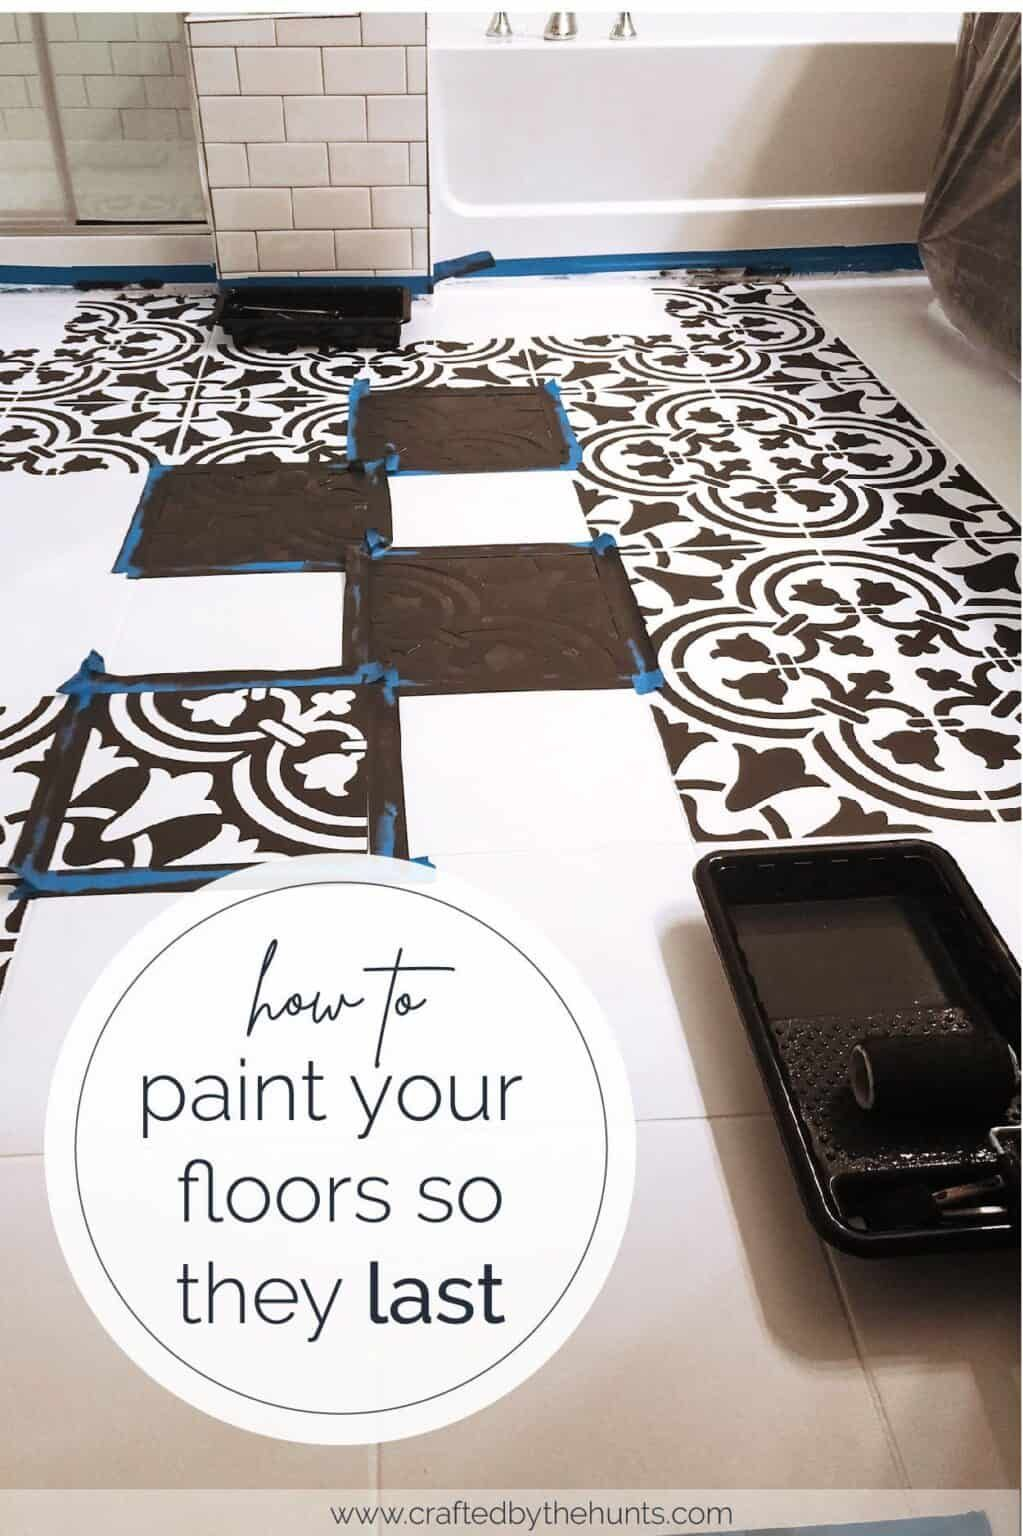 How To Paint Tile Floors So They Last Crafted By The Hunts In 2020 Tile Floor Diy Painting Tile Floors Painting Bathroom Tiles